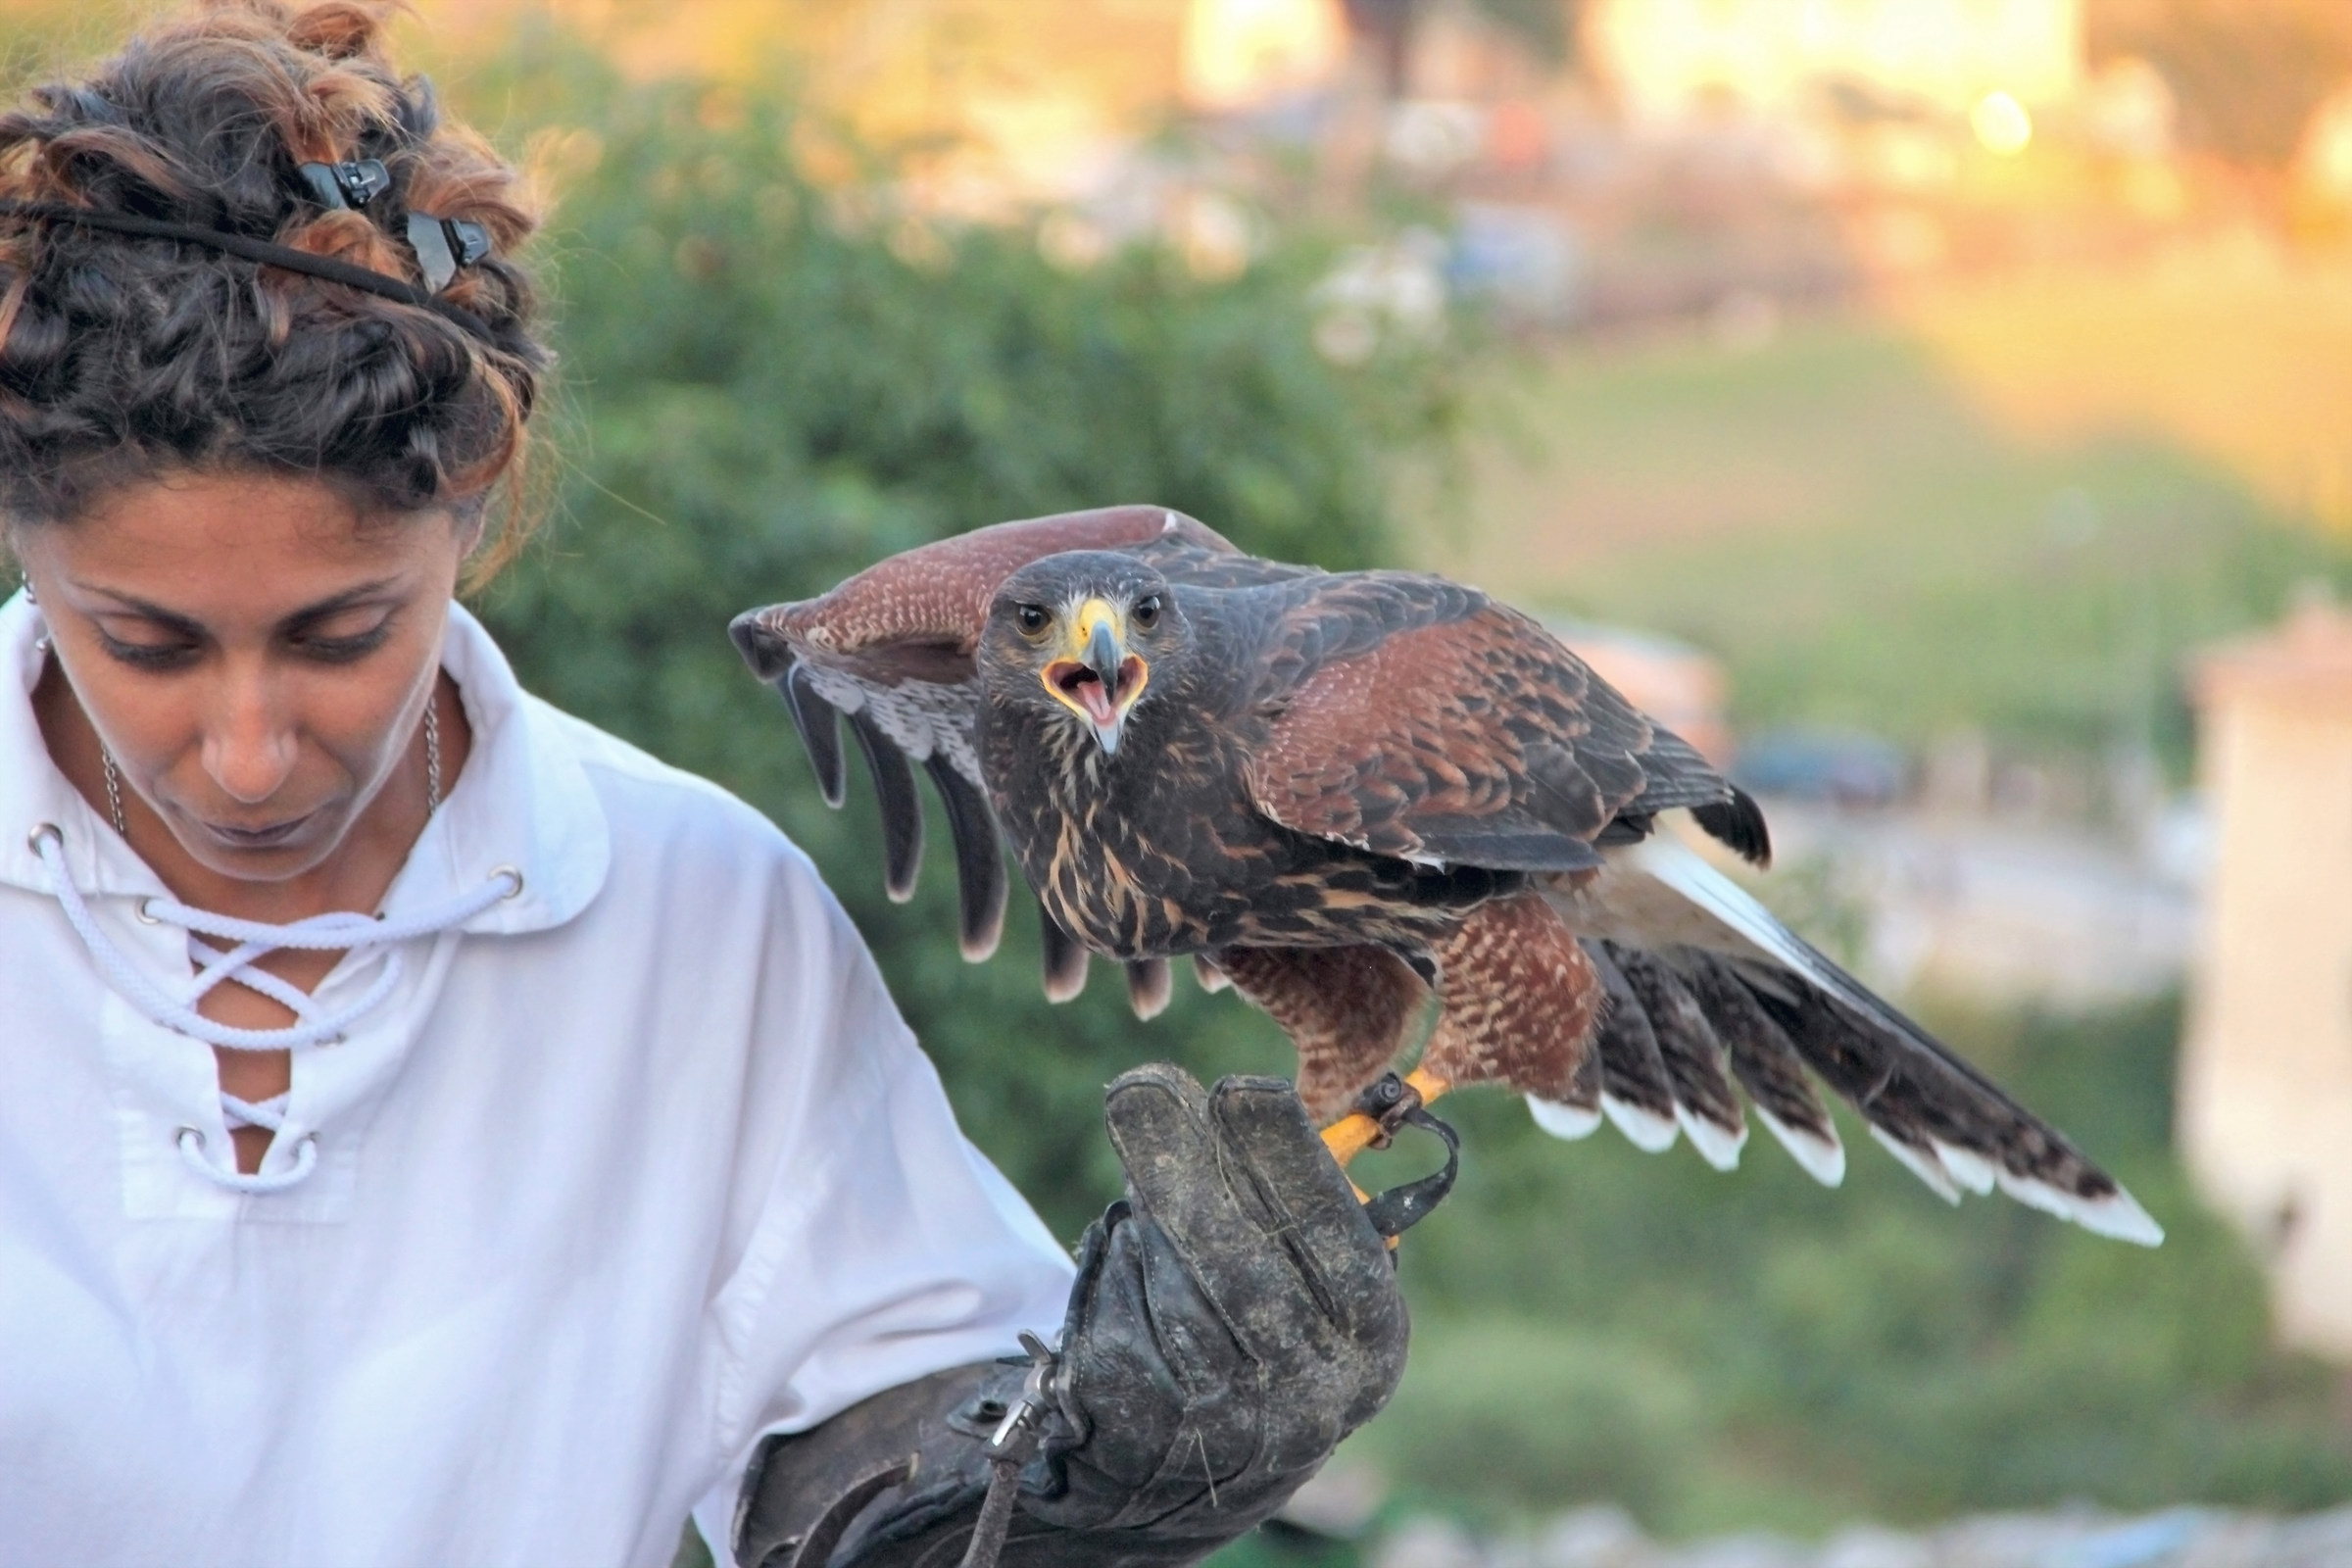 The ancient art of Falconry...